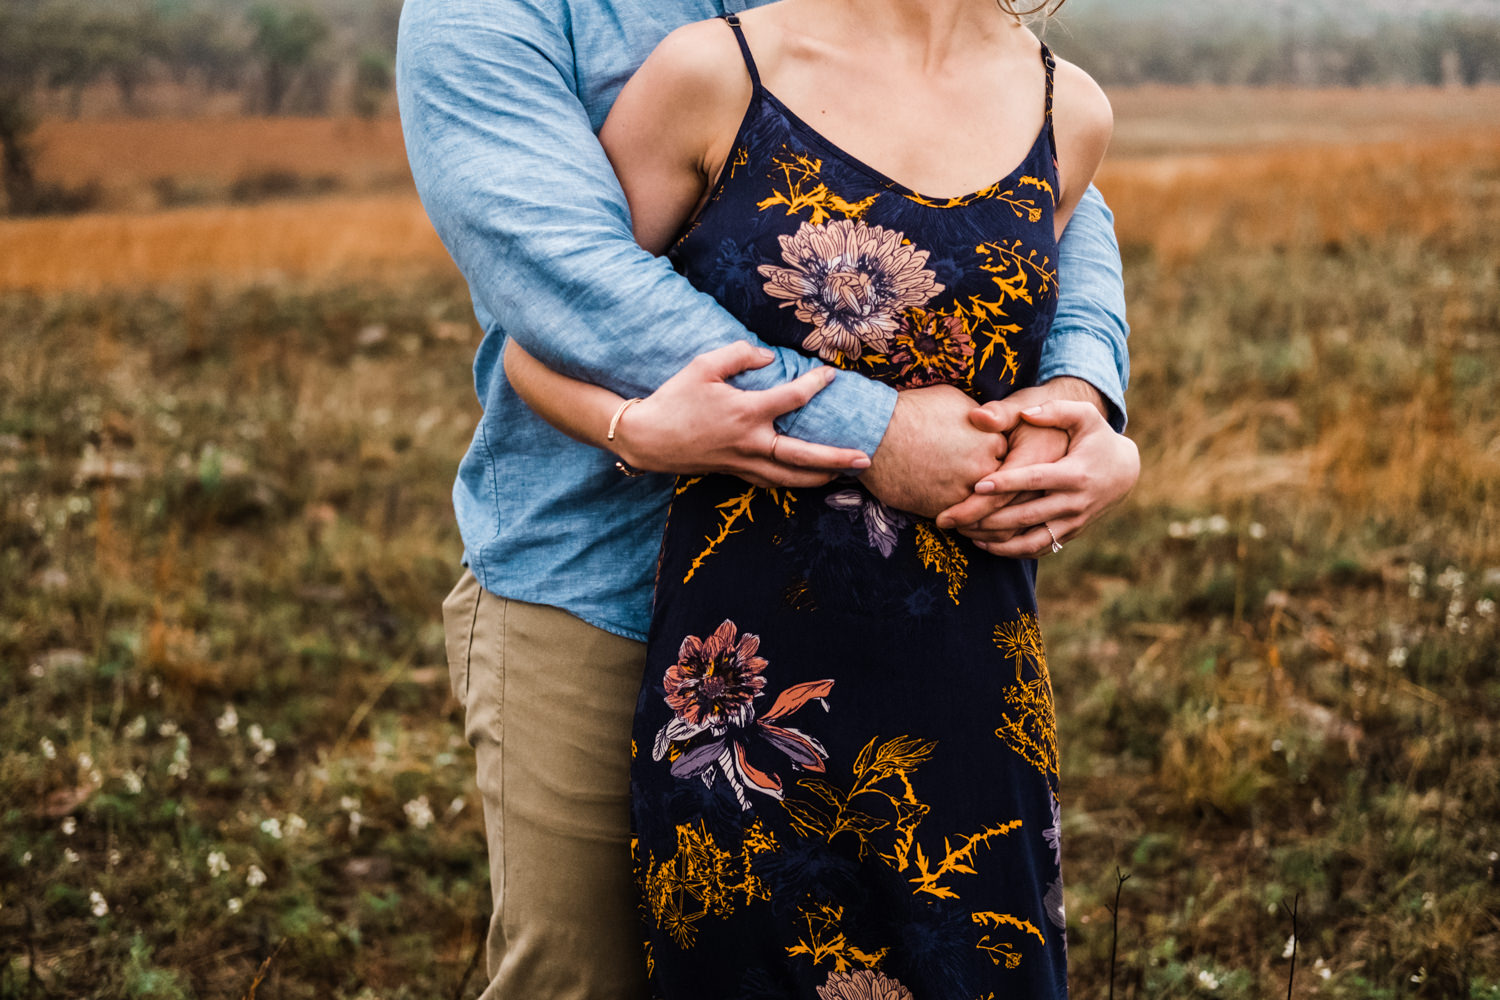 Oklahoma Engagement-Neal Dieker-Oklahoma Wedding Photography-Wichita Mountains-Wichita, Kansas Portrait Photographer-188.jpg